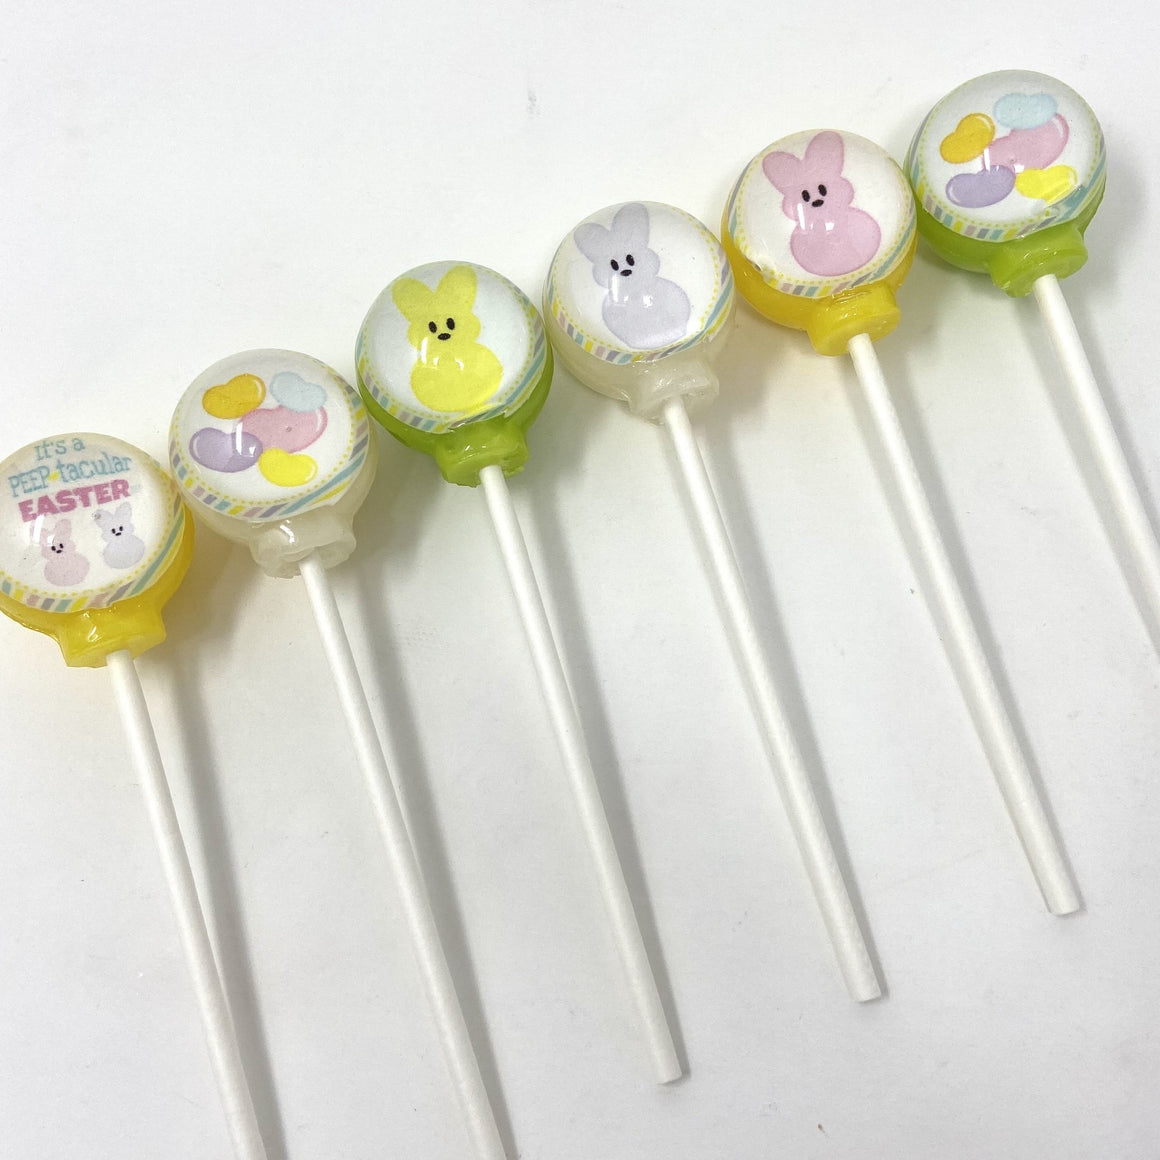 Peeps set of 6 lollipops by I Want Candy!